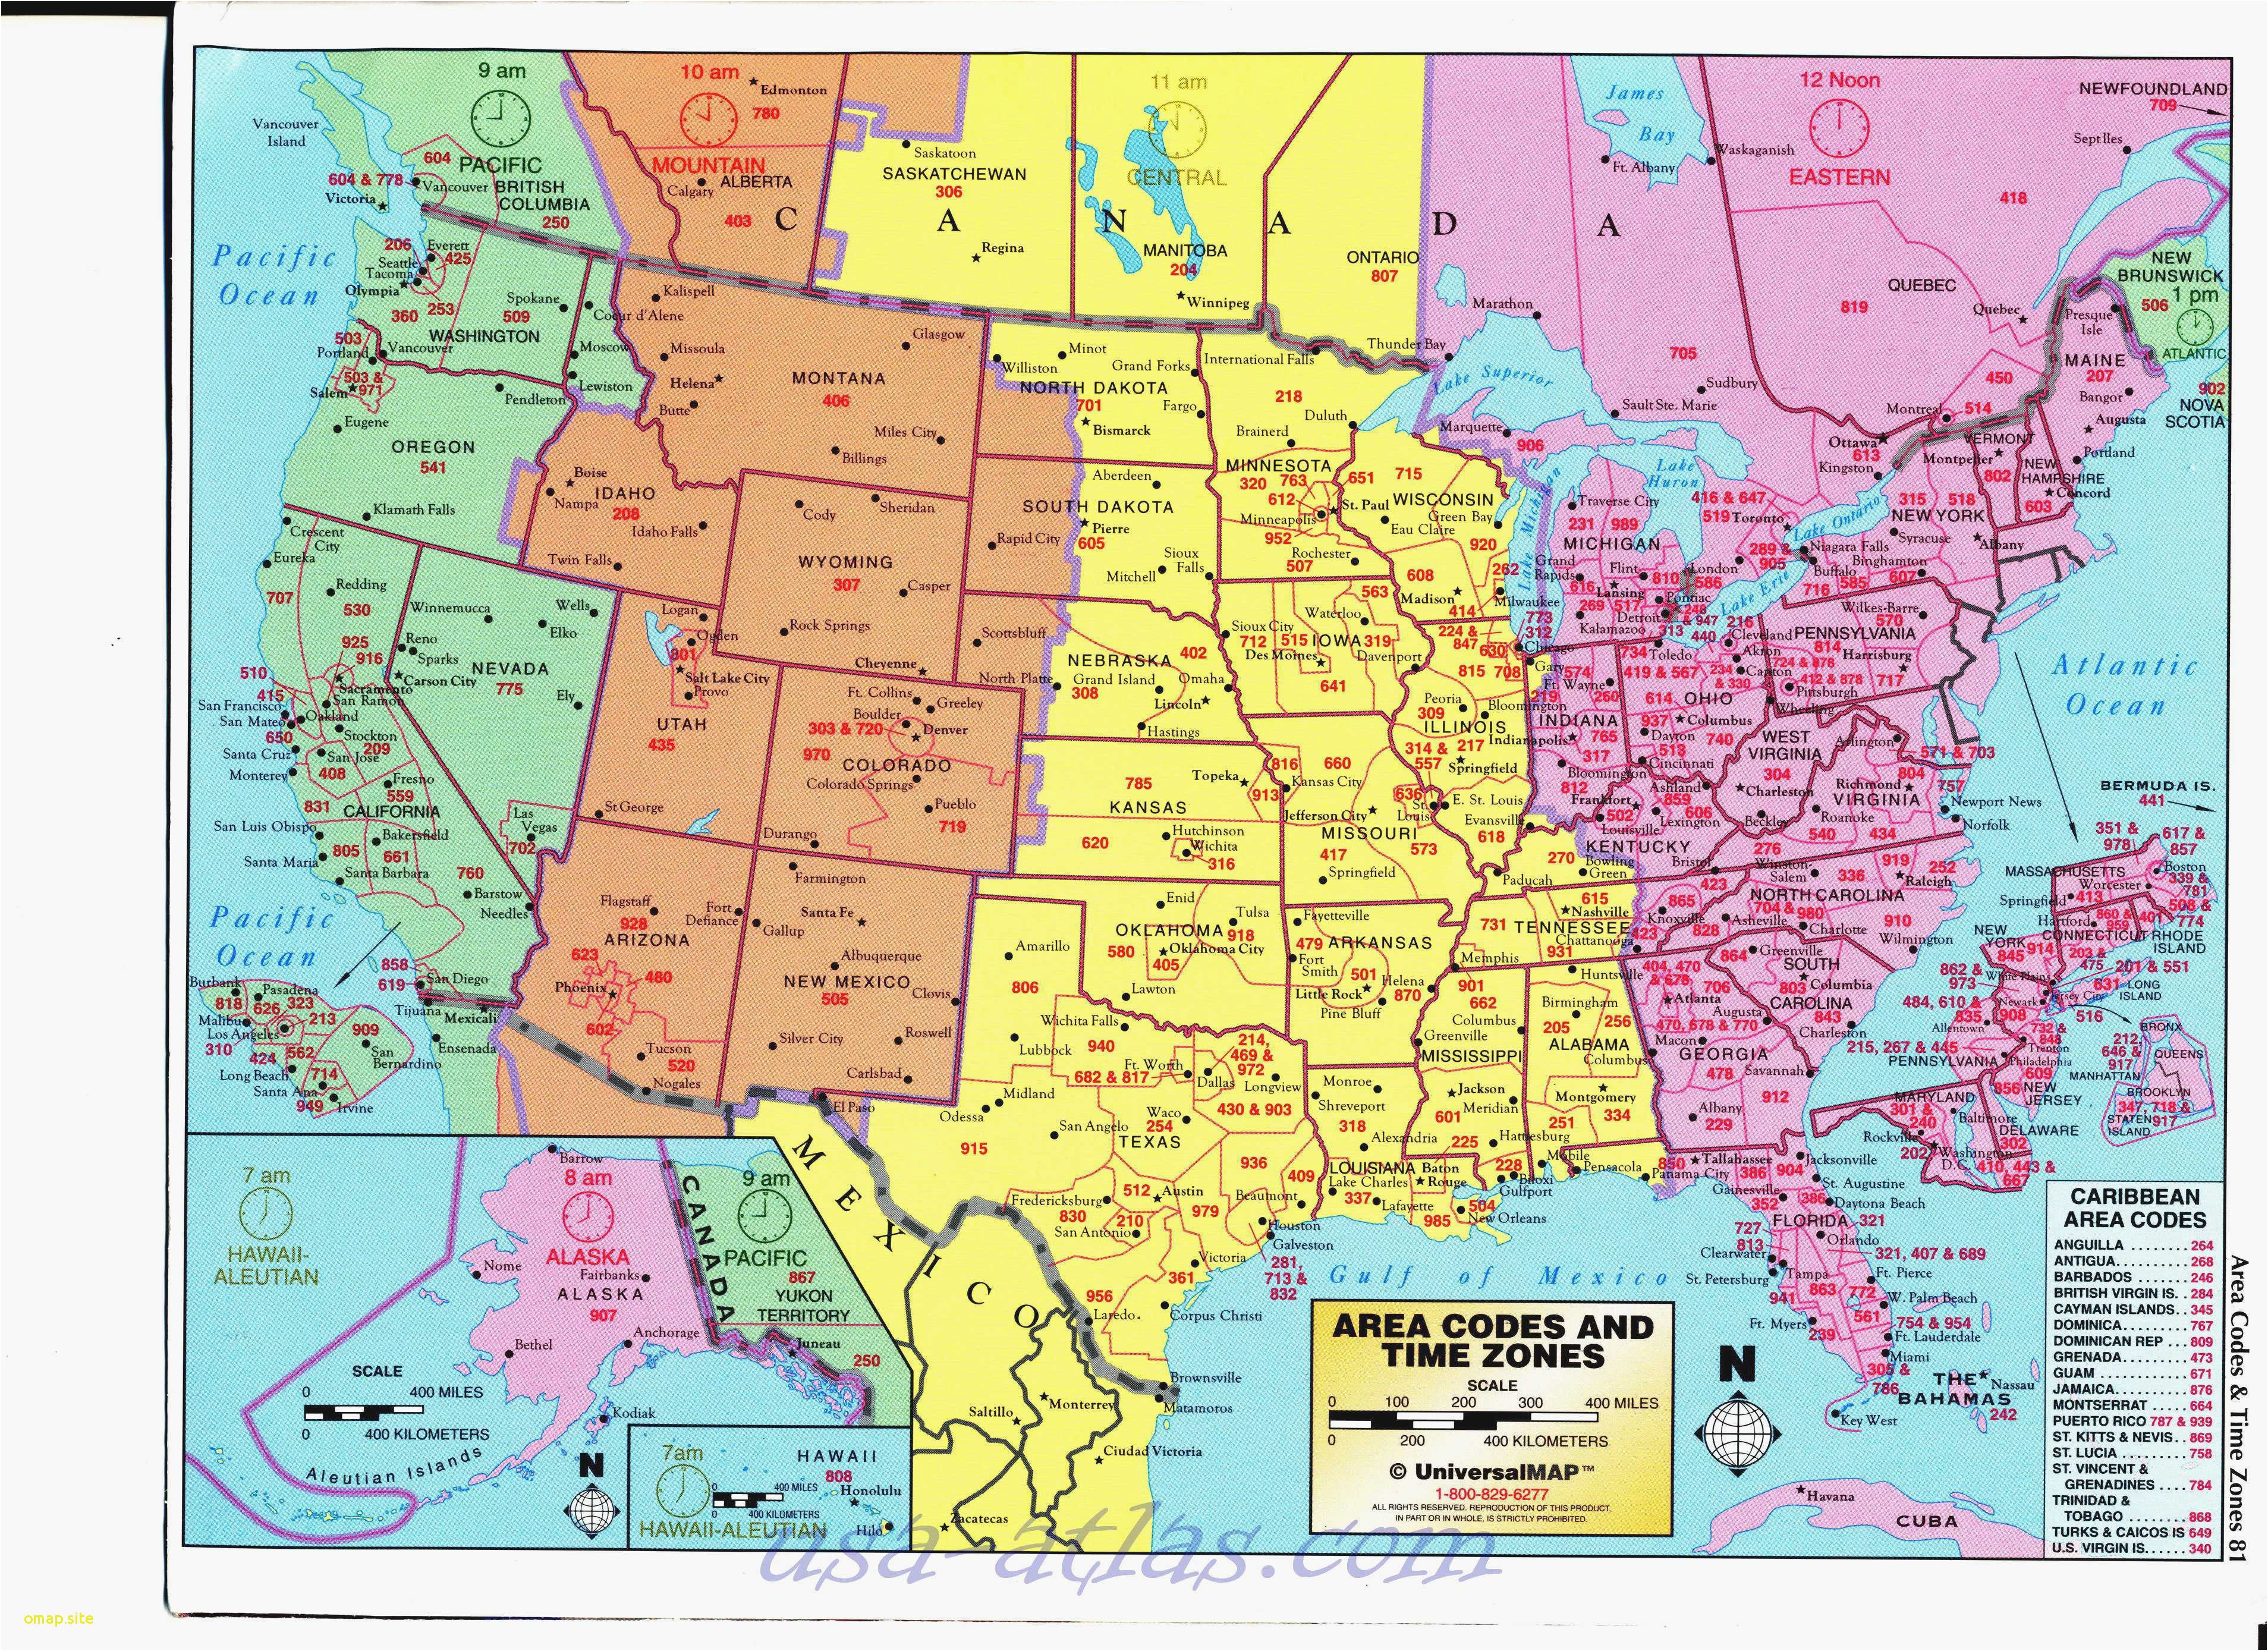 Ky Us Map on us map pr, us map al, us map ne, us map sh, us map ws, us map ri, us map oh, us map hk, us map in 1880, us map wv, us map mt, us map ok, us map ab, us map sc, us map ca, us map ut, us map ar, us map sd, us map mn, us map st,